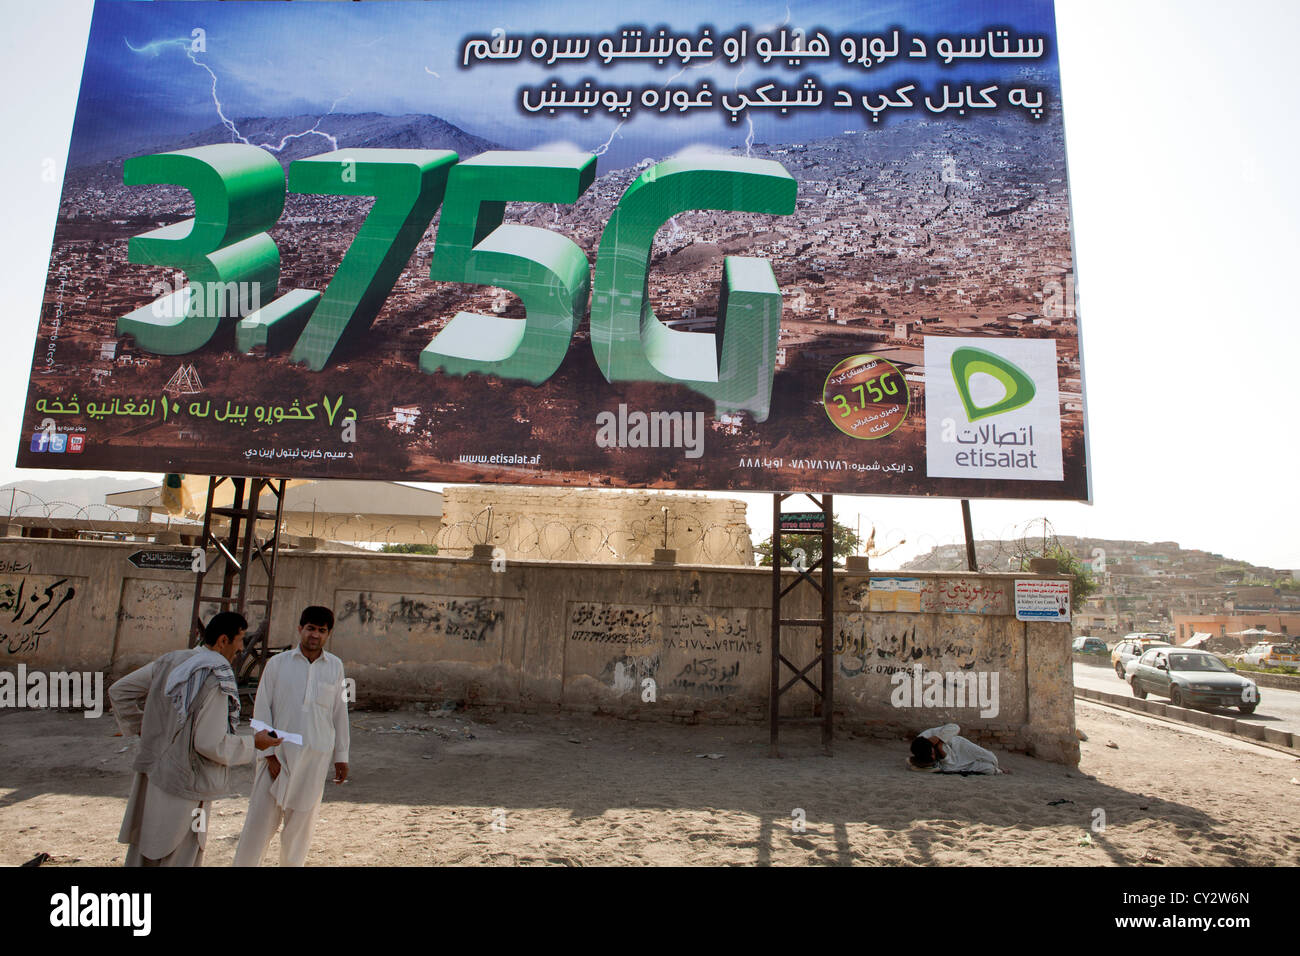 billboard with mobile phone advertisement in Afghanistan - Stock Image